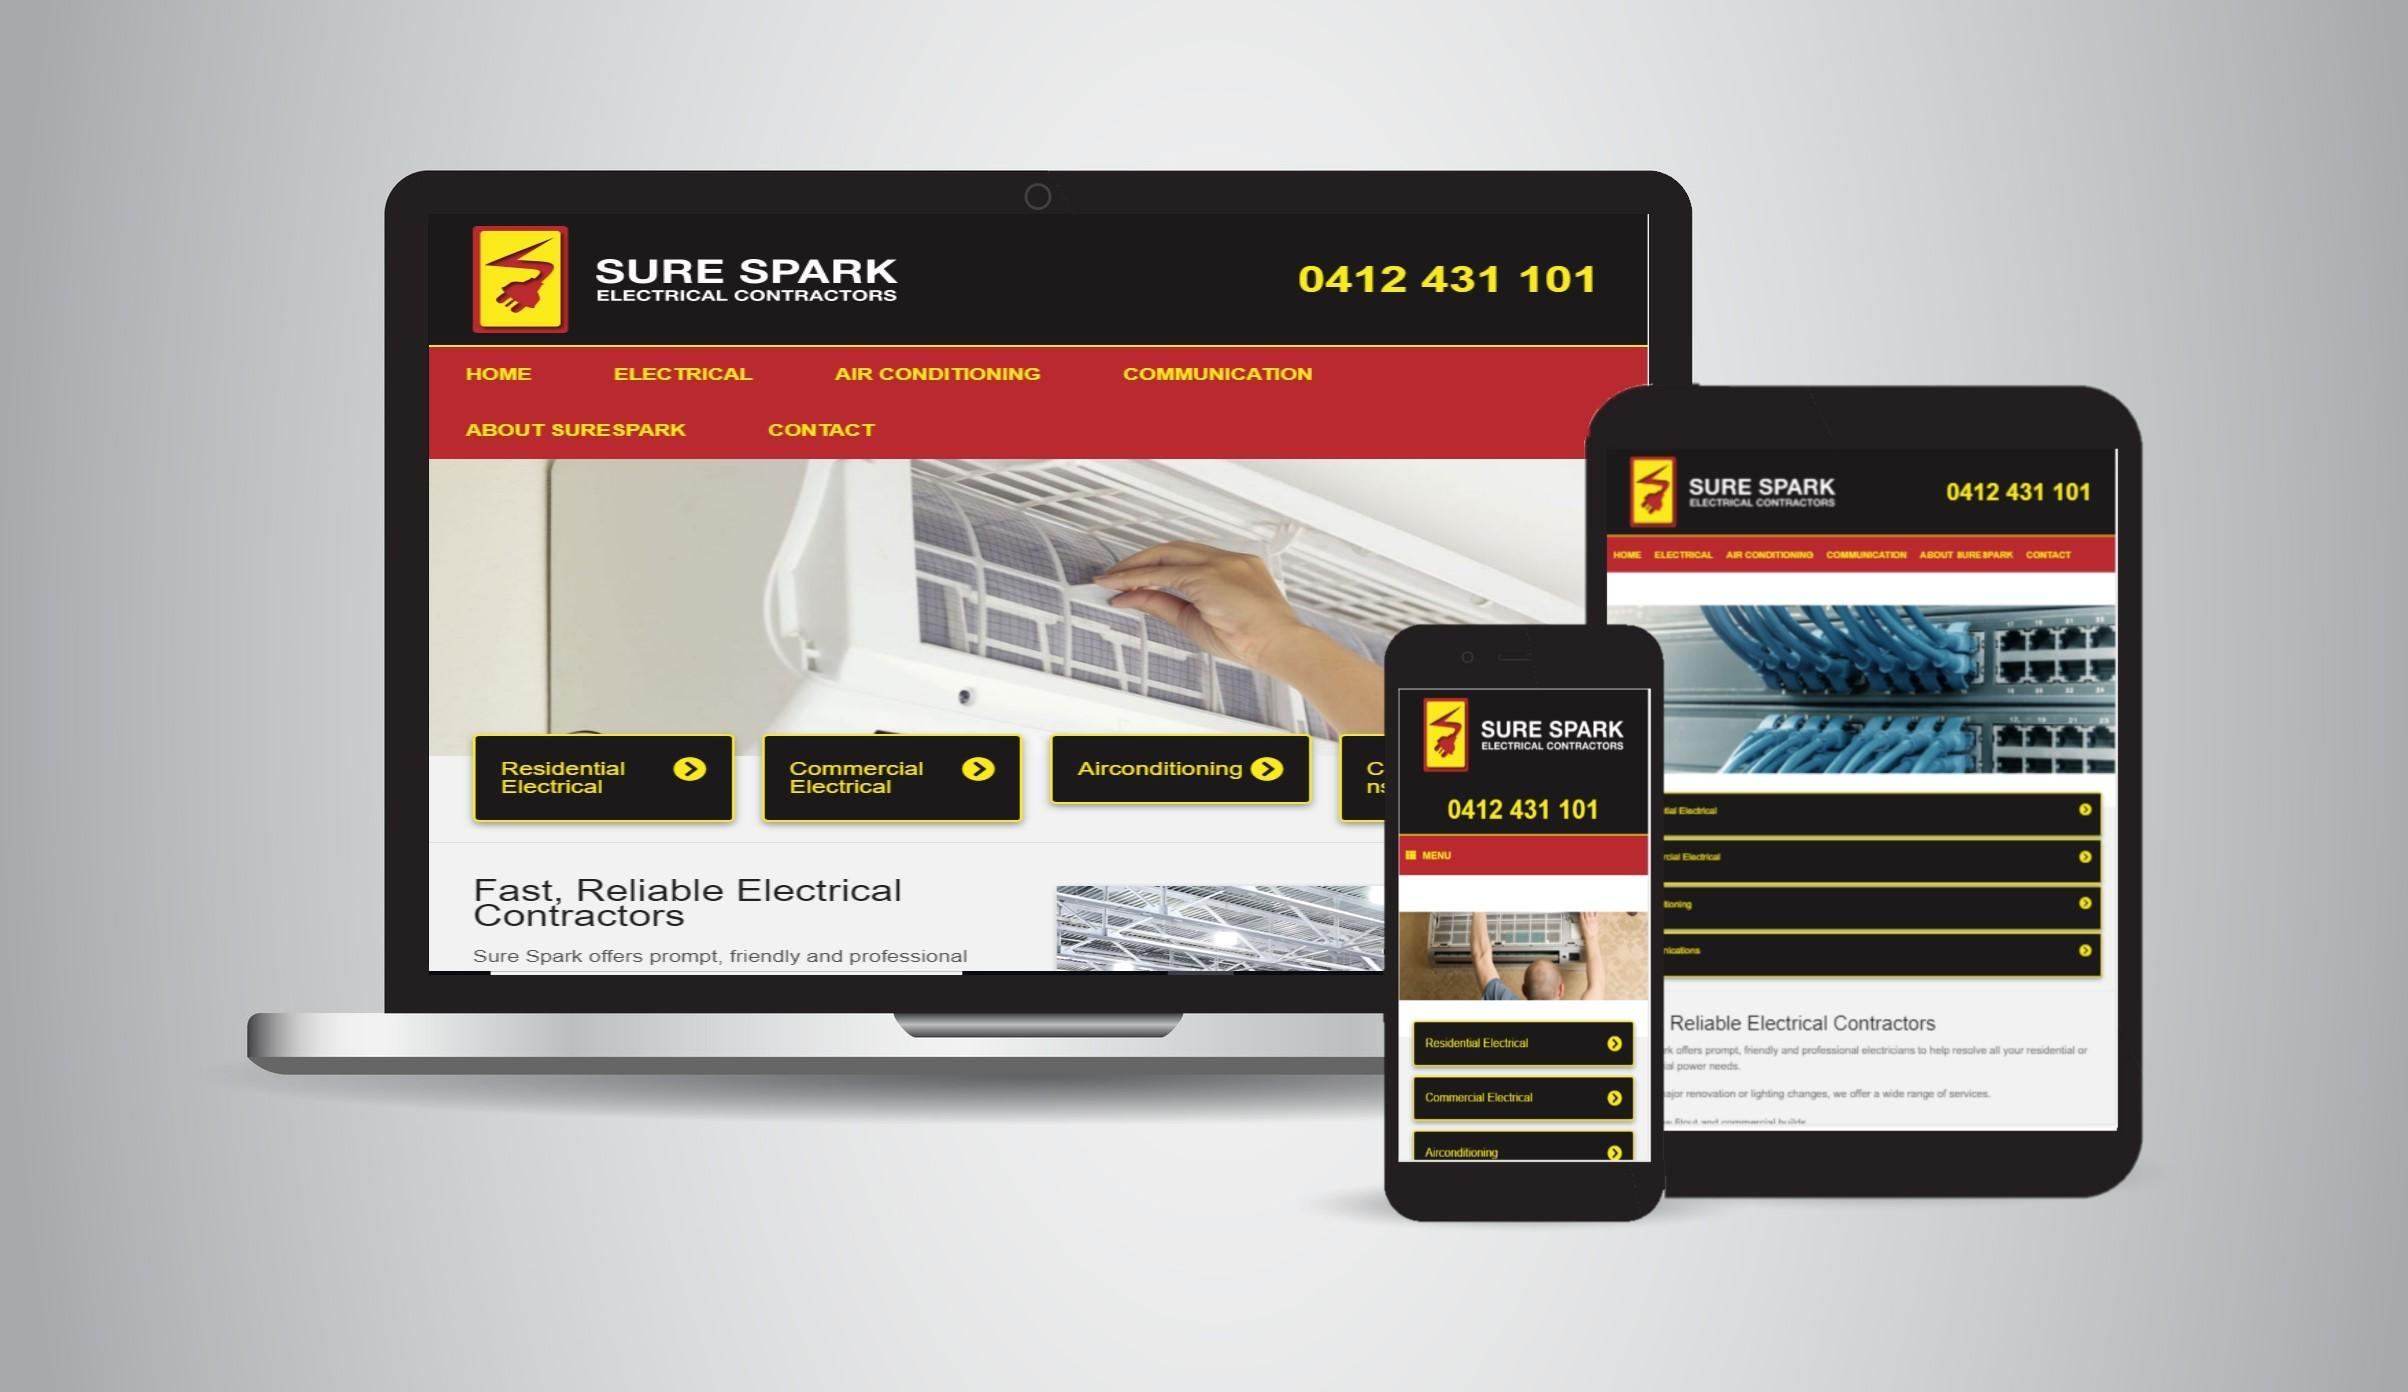 Sure Spark - Electricians, Airconditioning & Refrigeration